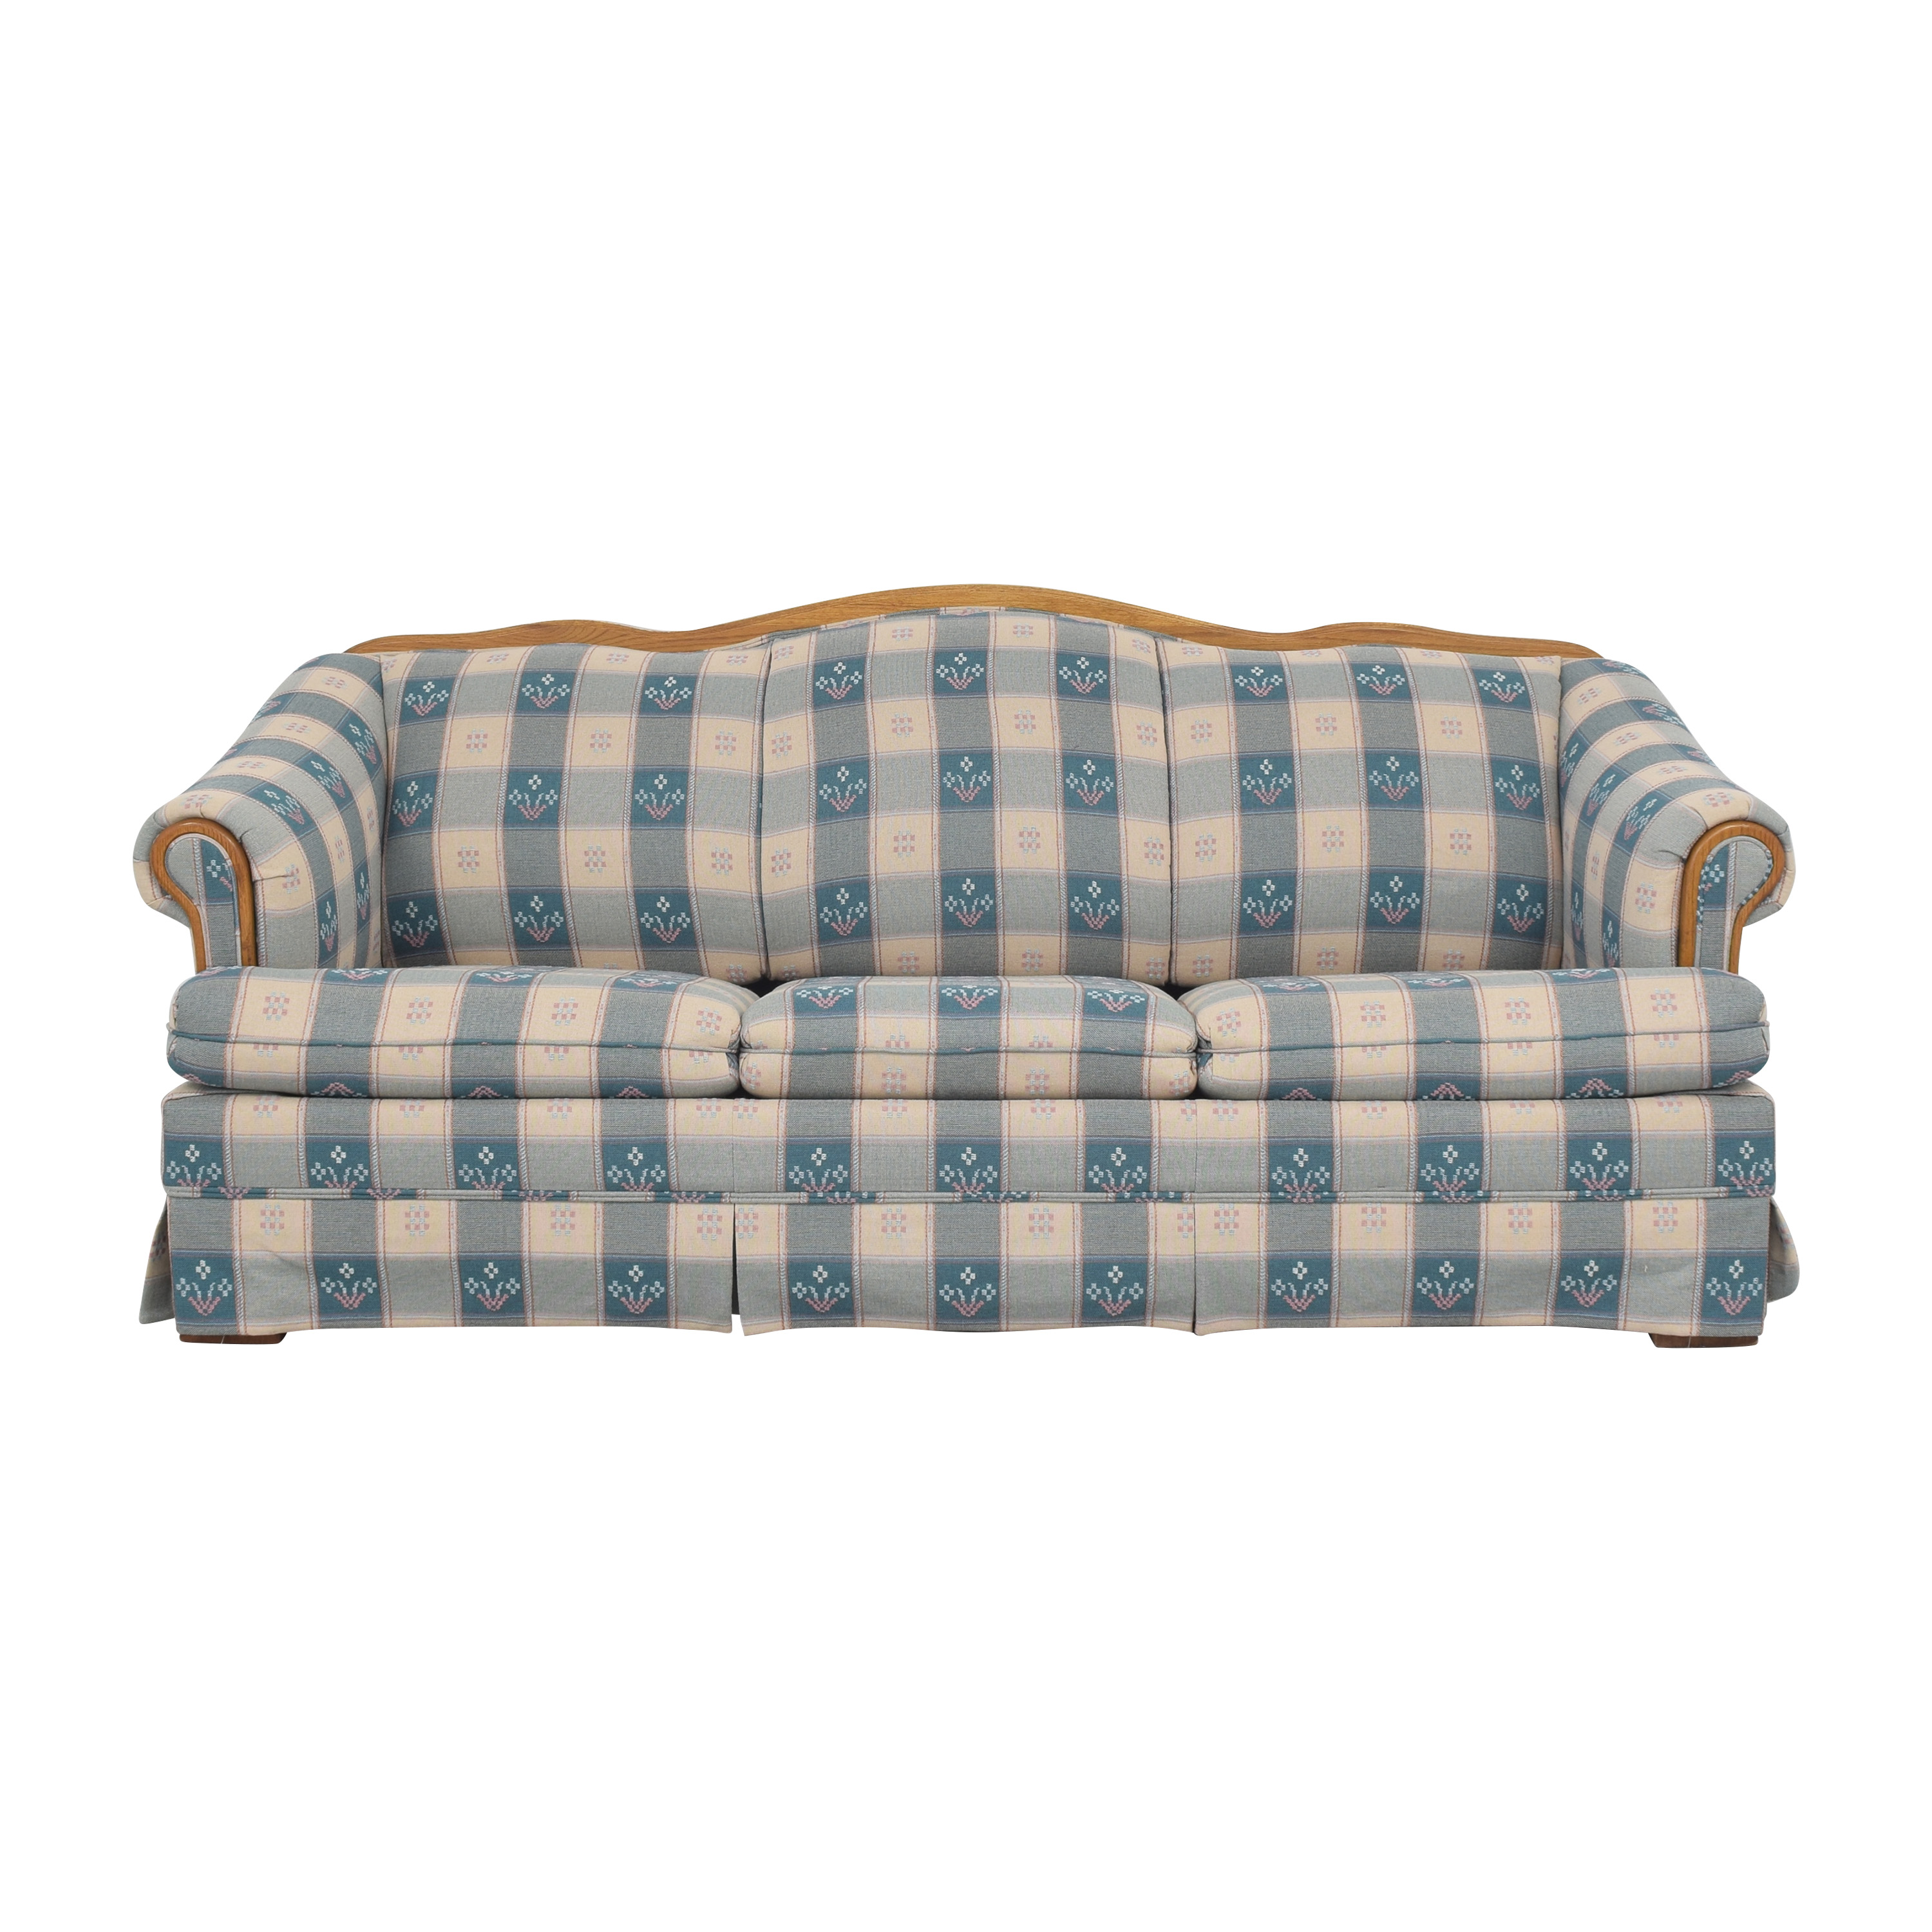 Broyhill Furniture Broyhill Furniture Roll Arm Sleeper Sofa discount